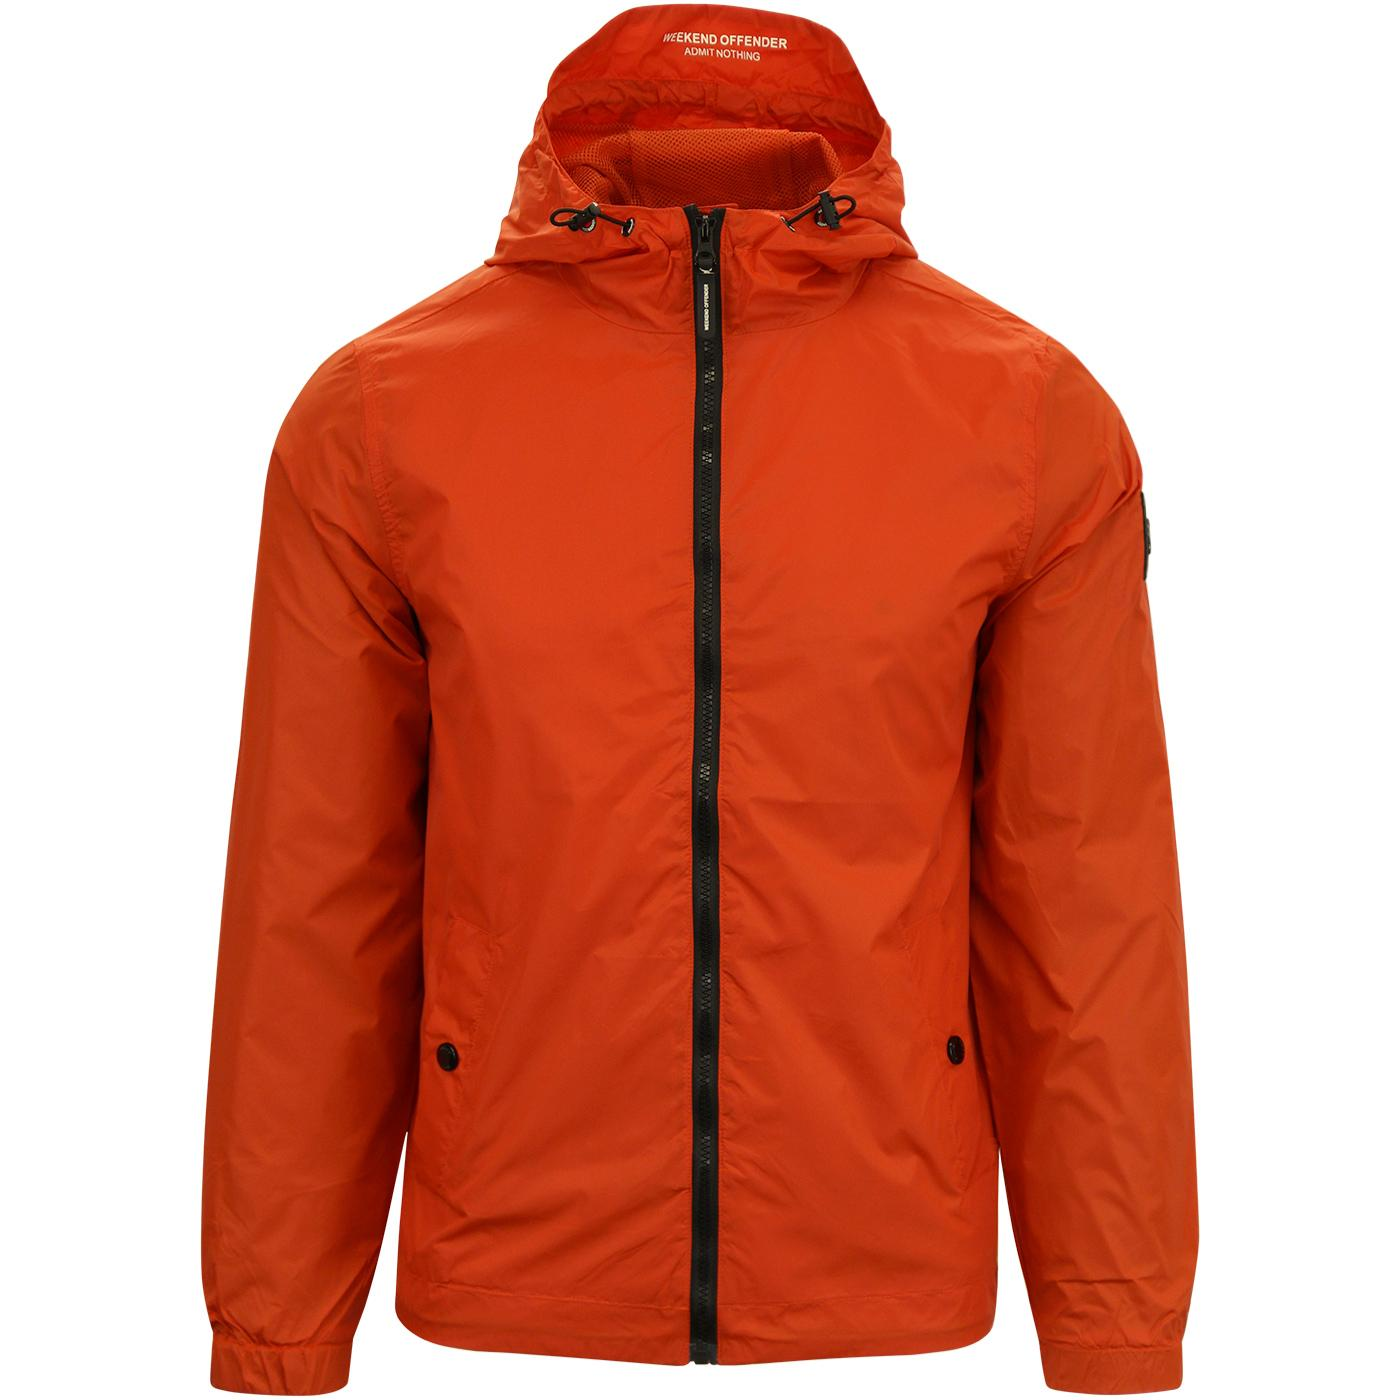 Fabio WEEKEND OFFENDER Retro Terrace Jacket COSMOS